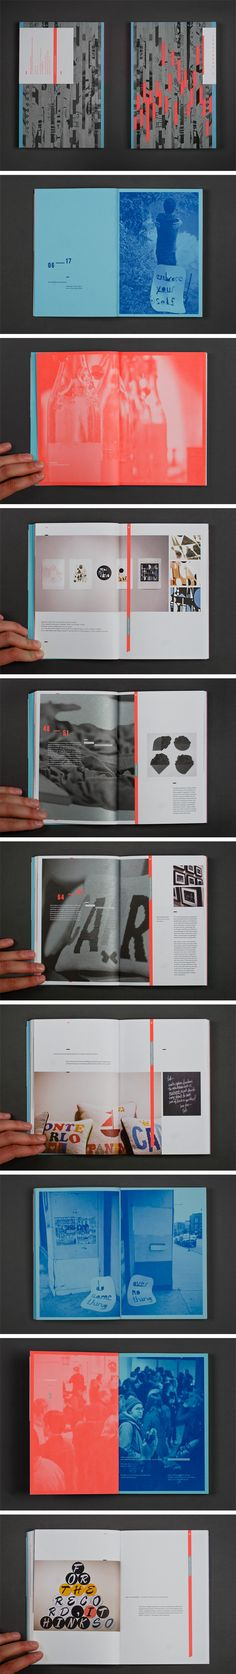 Typeforce 2 Exhibition Catalogue.I like the colour choices and the abstract…